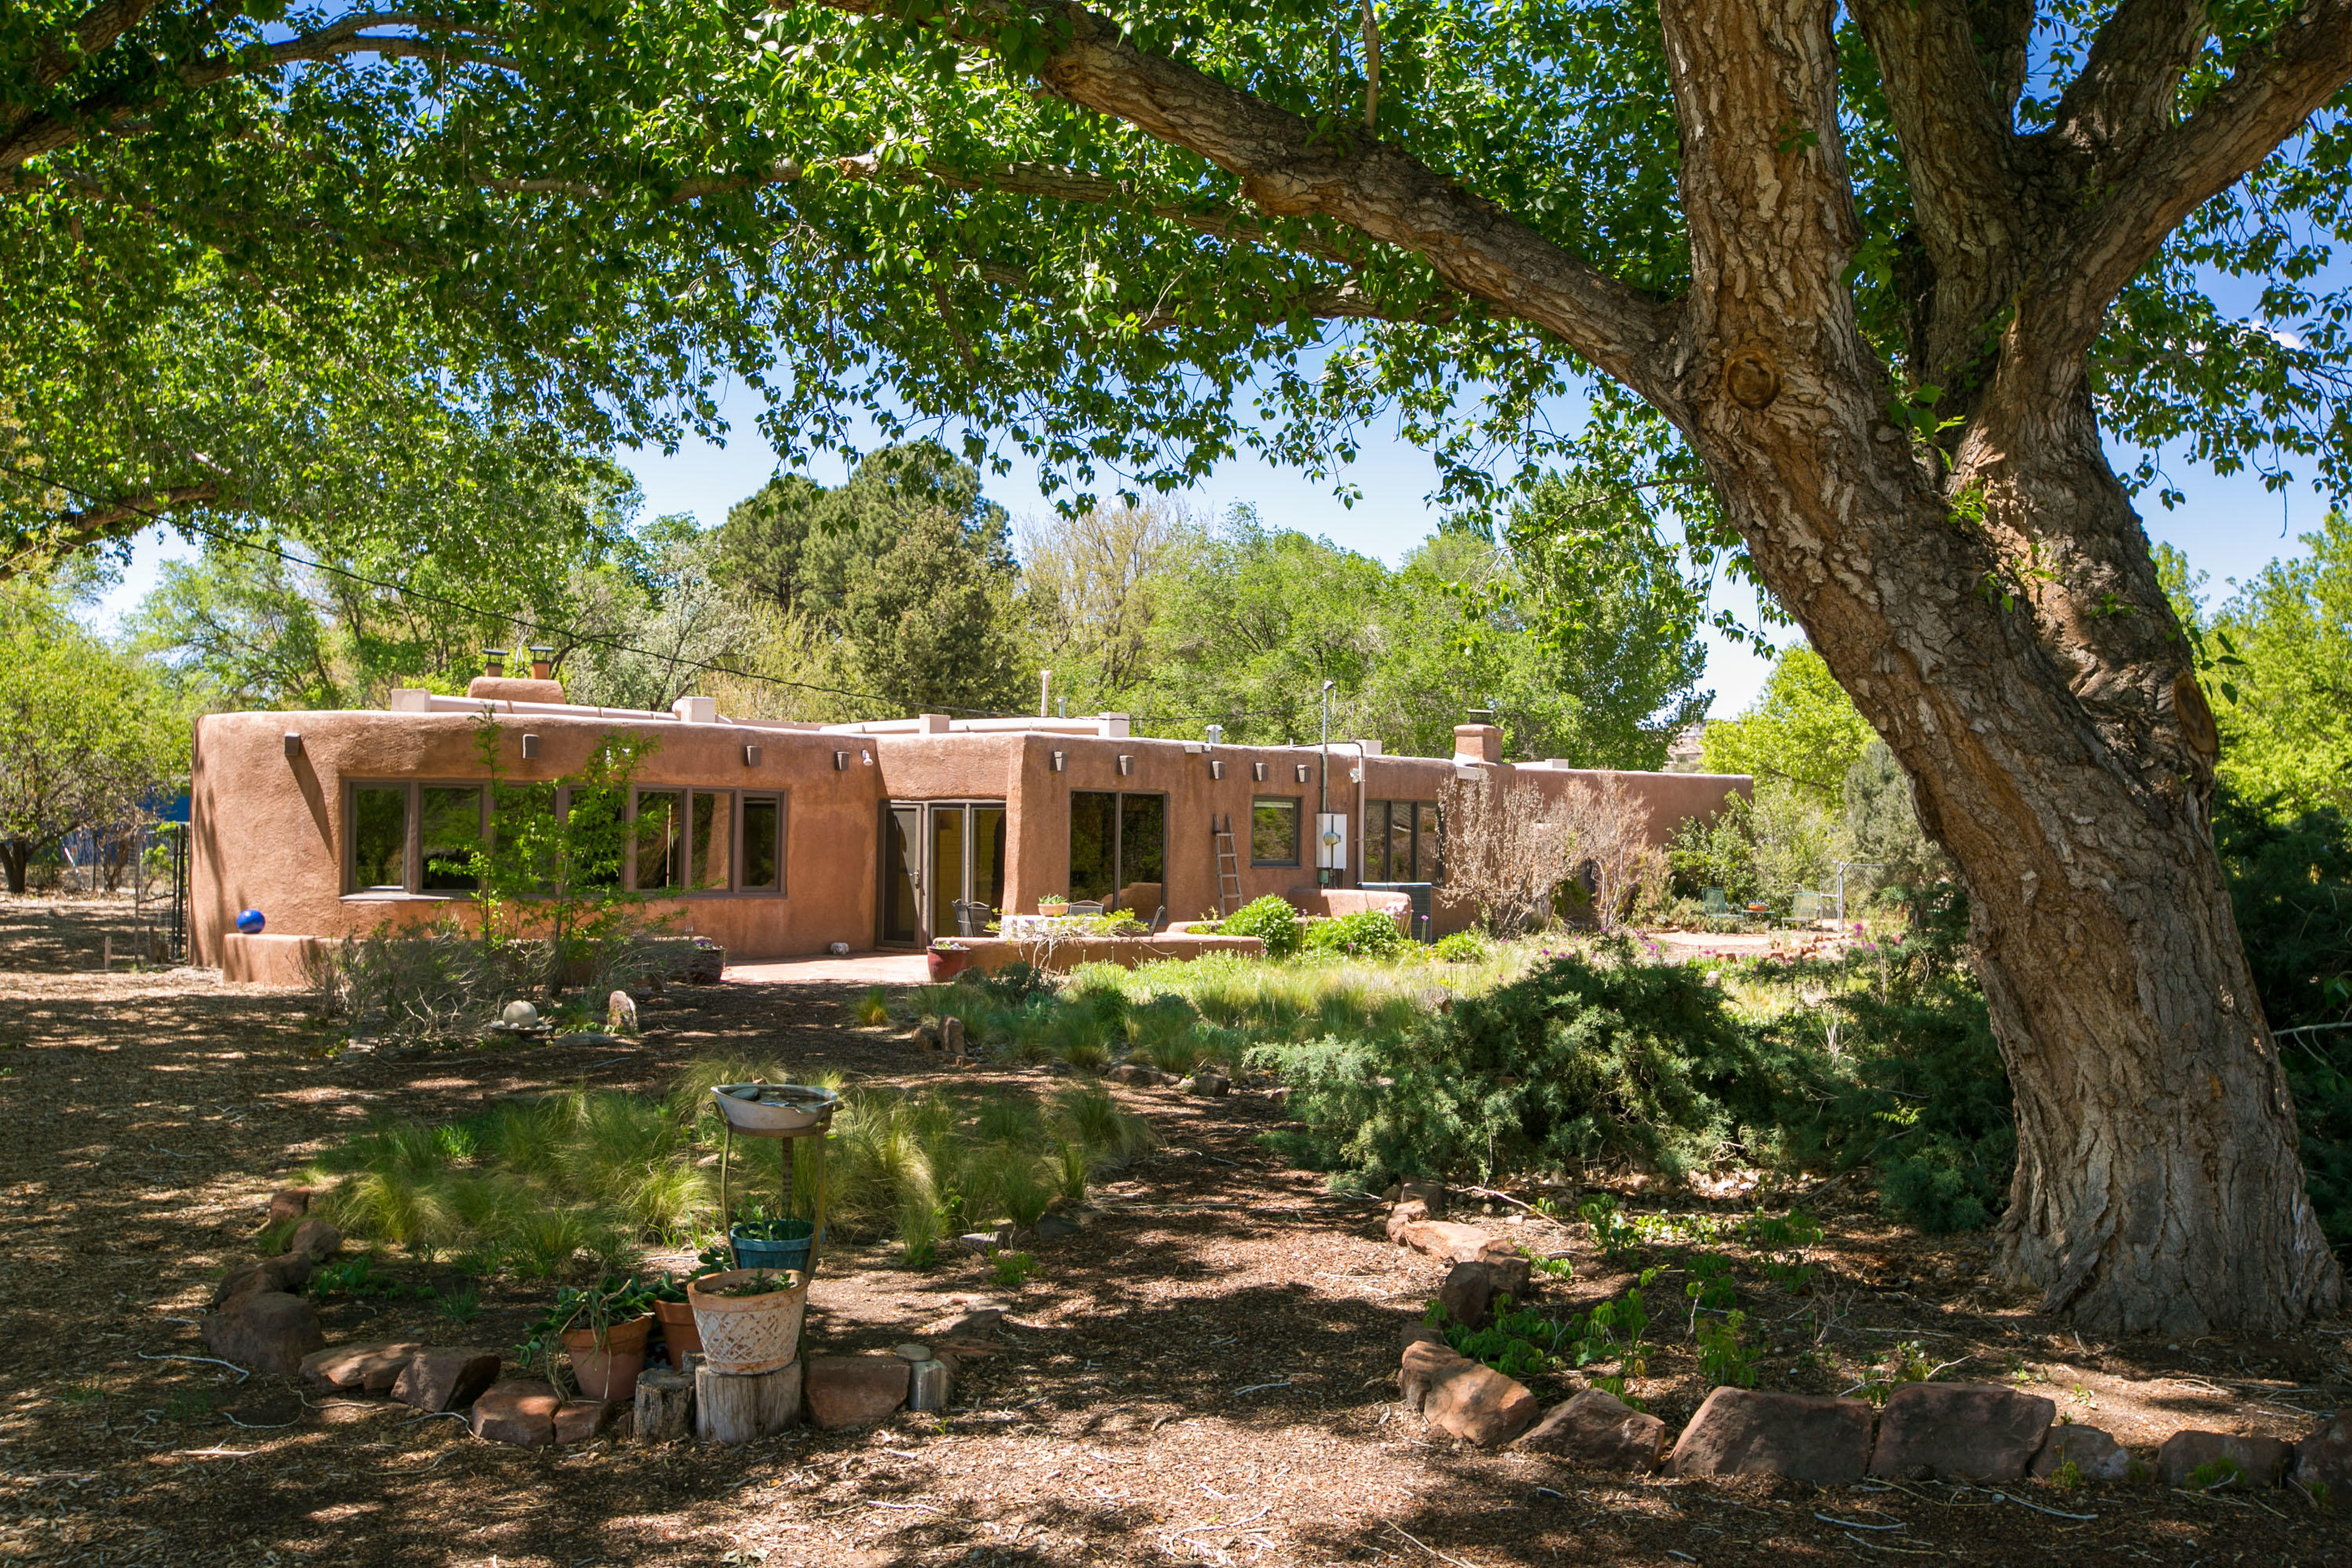 Fabulous adobe on a beautiful south endCorrales acre.  Nestled under the cottonwoods,  this is a real charmer.Beams, T & G,  4 kiva FP's, brick floors, saltillo, niches, bancos and more!  Courtyard entry, greatroom, dining room, stepdown bonus room w/FP,  primary suite w/sitting area, oversized shower, private courtyard, banco, & FP,  spacious 2BR, full bath, family room/den, separate 3BR or studio,  2 car garage, carport.  Access to backyard, which is beautully designed for the gardener and nature enthusiast.   This santuary offers plenty of room for your animals.  A terrific home for entertaining both inside and out.Only minutes away from shopping, hospitals and access to our Corrales trails & bosque.A true adobe on a southend private location.